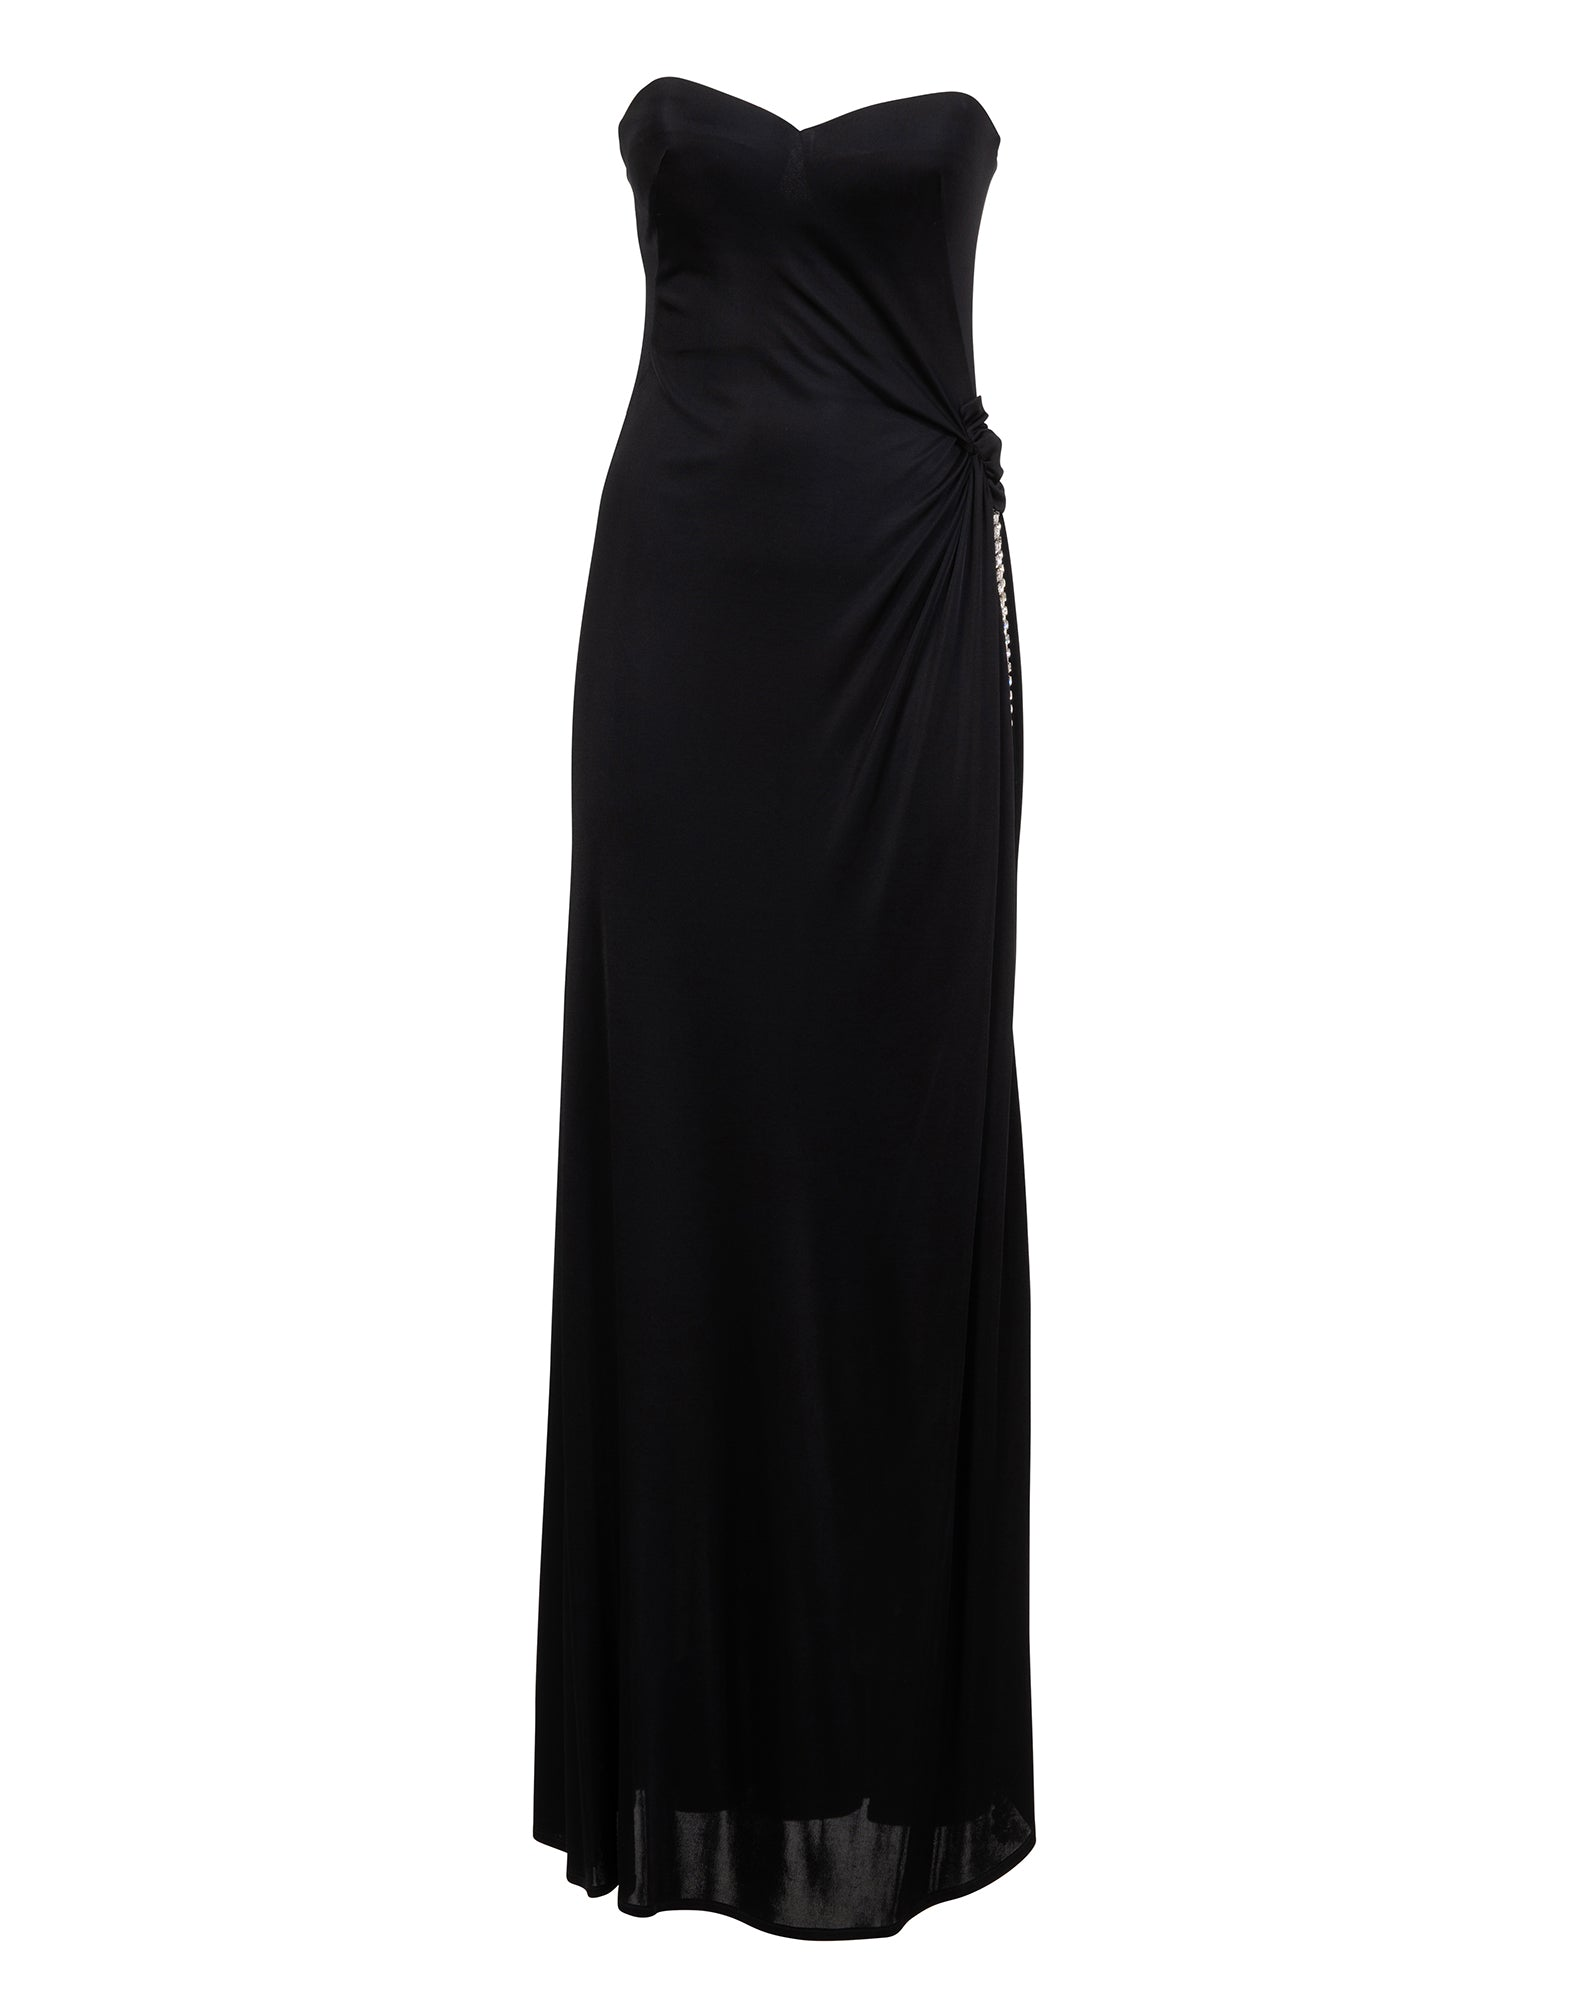 Black strapless rhinestone-embellished gown